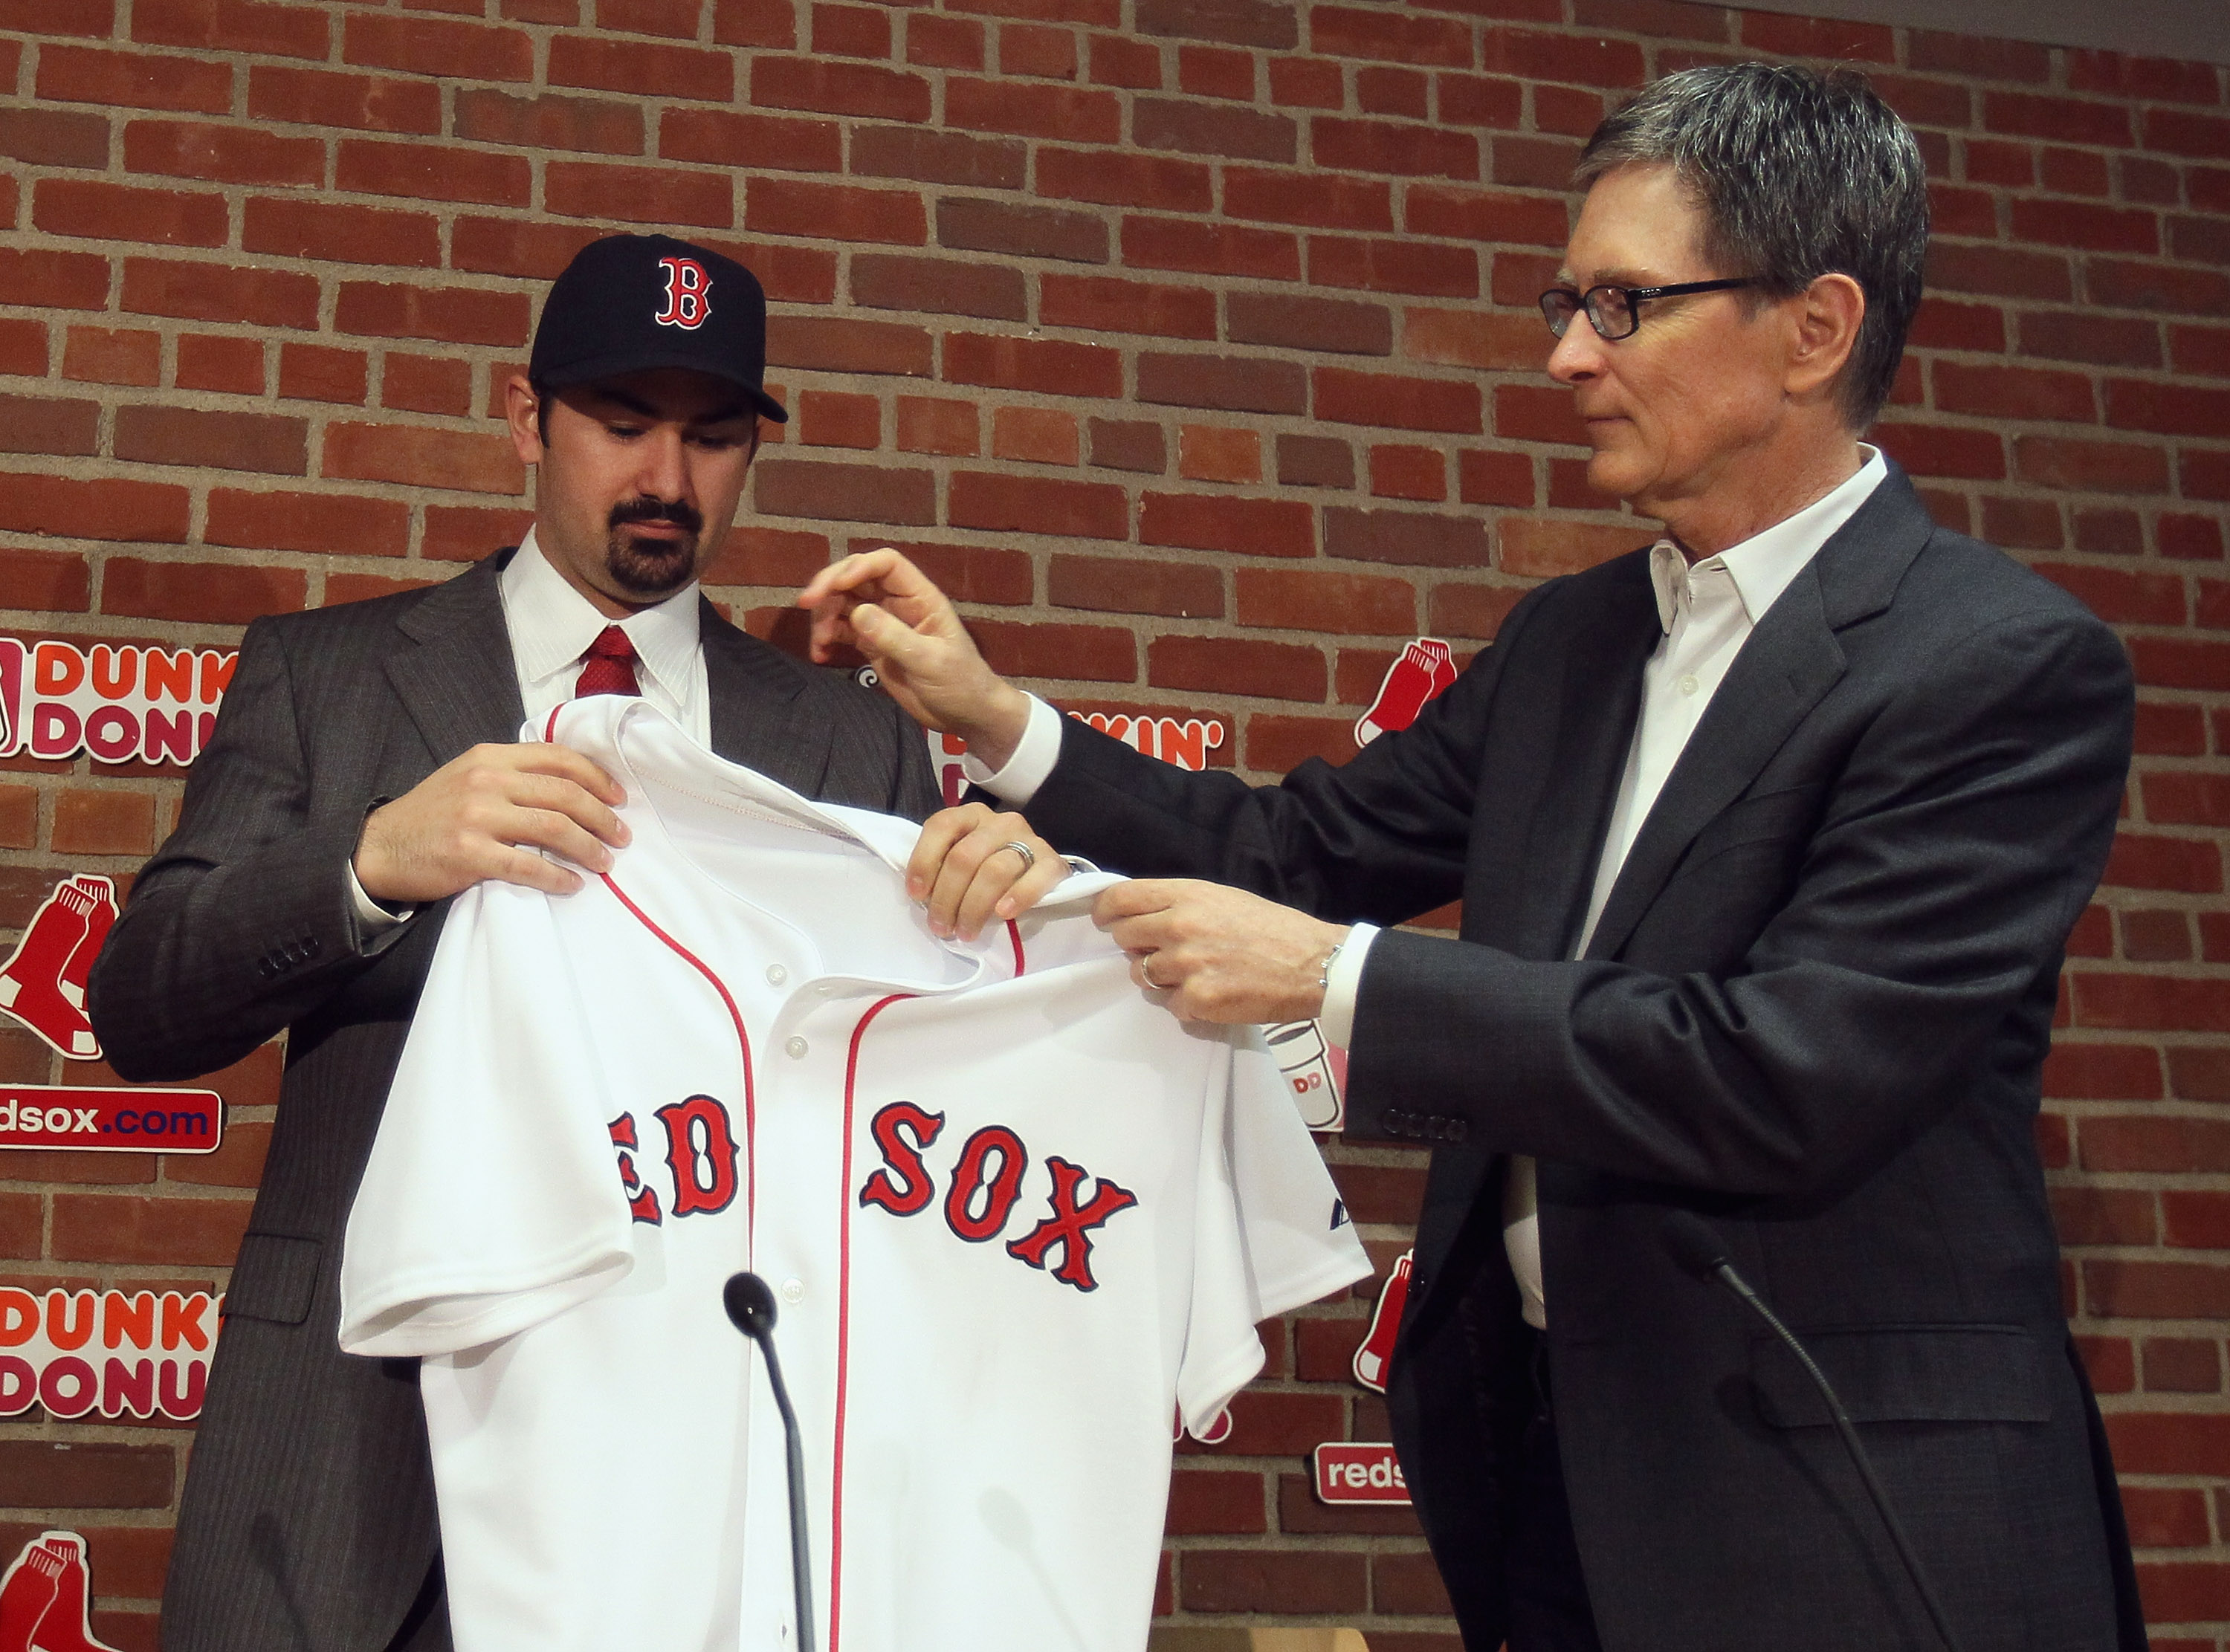 BOSTON, MA - DECEMBER 06:  Adrian Gonzalez (L) gets his jersey from principle owner John Henry during a press conference announcing that he signed with the Boston Red Sox on December 6,  2010 at Fenway Park in Boston, Massachusetts.  (Photo by Elsa/Getty